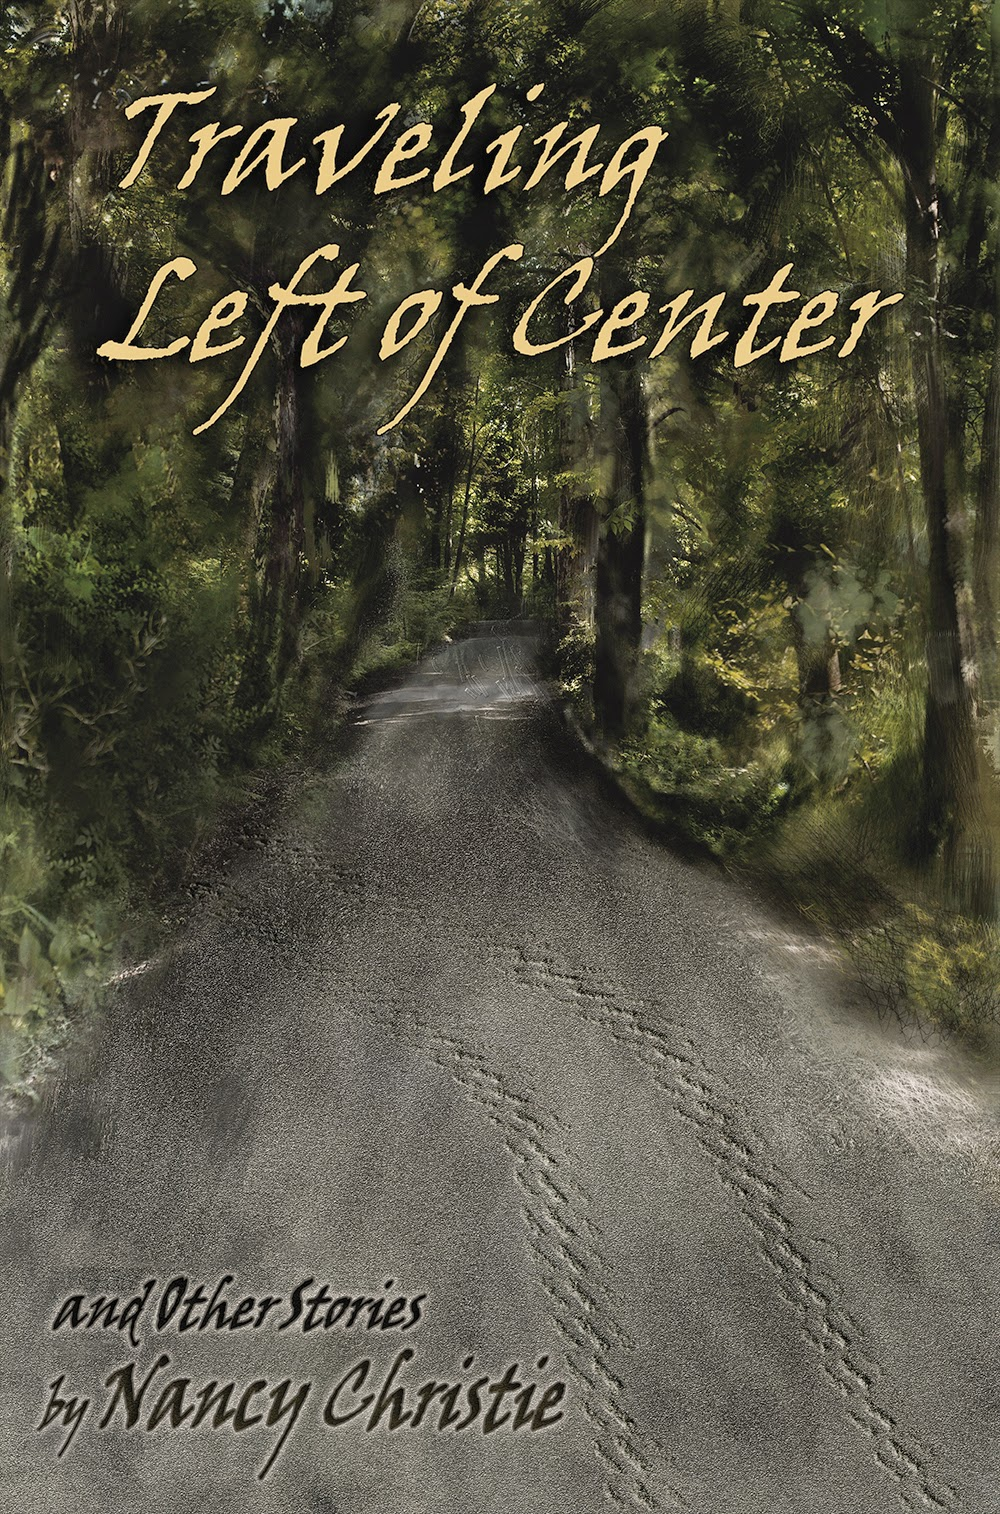 http://www.amazon.com/Traveling-Left-Center-Other-Stories-ebook/dp/B00M2AAHFO/ref=tmm_kin_swatch_0?_encoding=UTF8&sr=&qid=